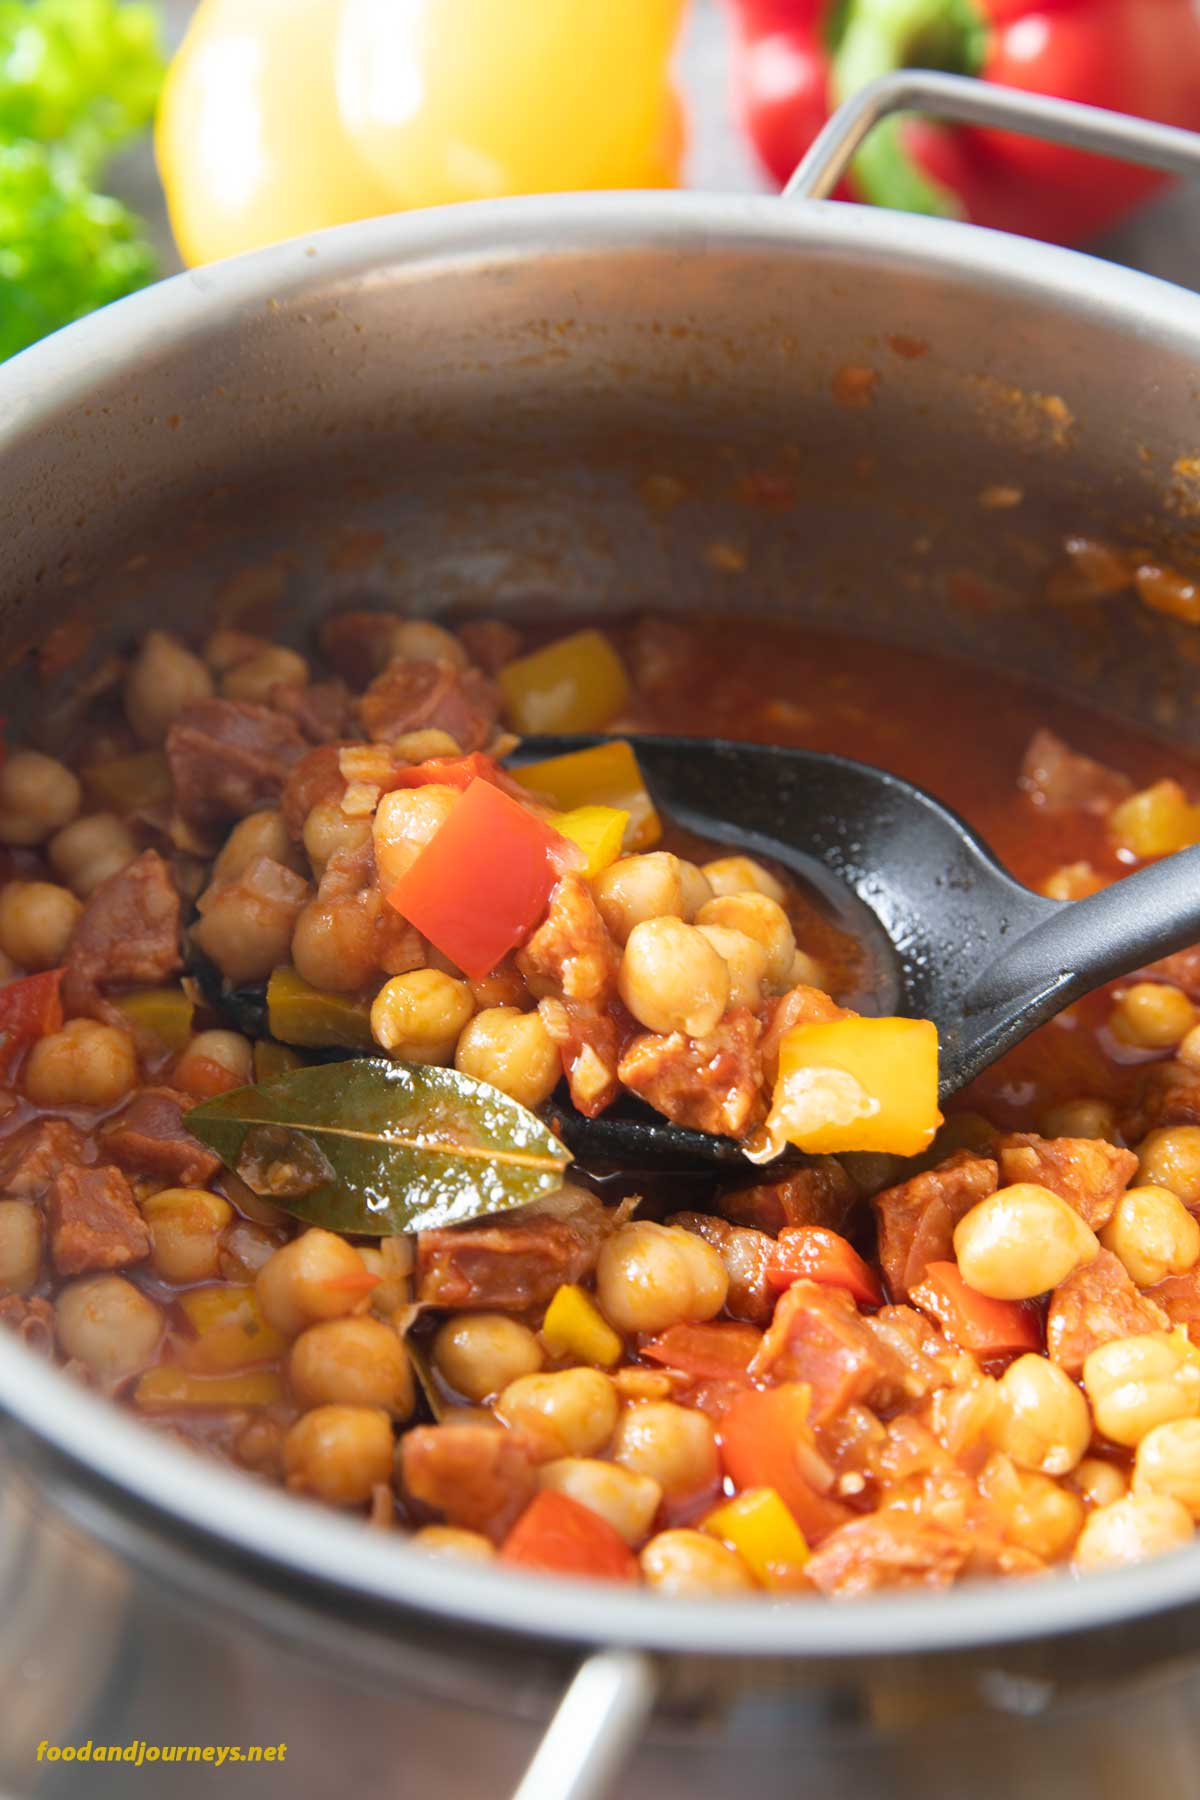 A closer shot of a pot of Spanish Chorizo and Chickpea Stew, with someone using a ladle to scoop and place it on a plate for serving.